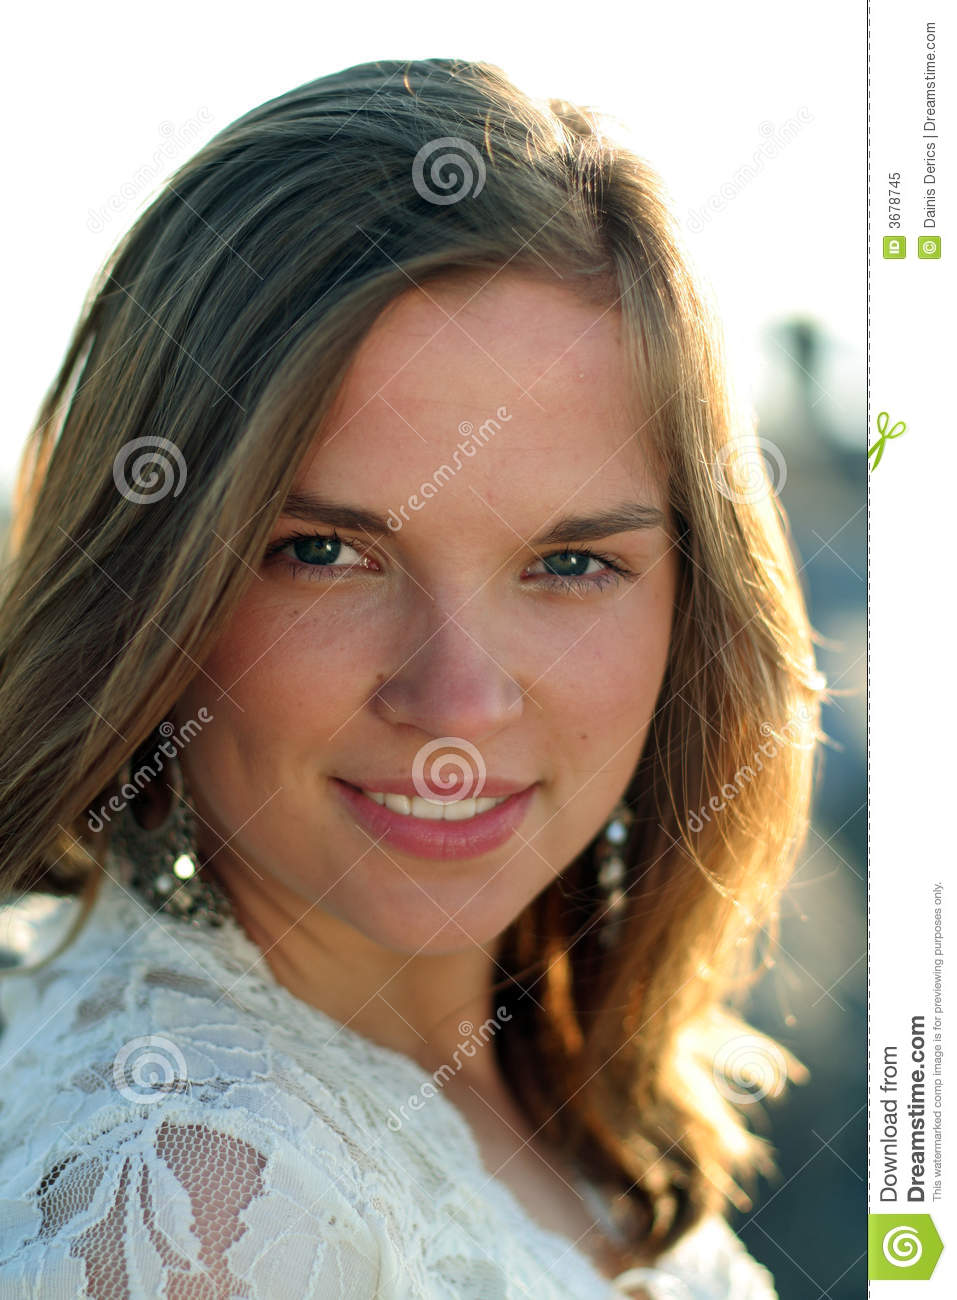 Nice Portrait Of Happy Teen Girl Royalty Free Stock Photo - Image 3678745-7808